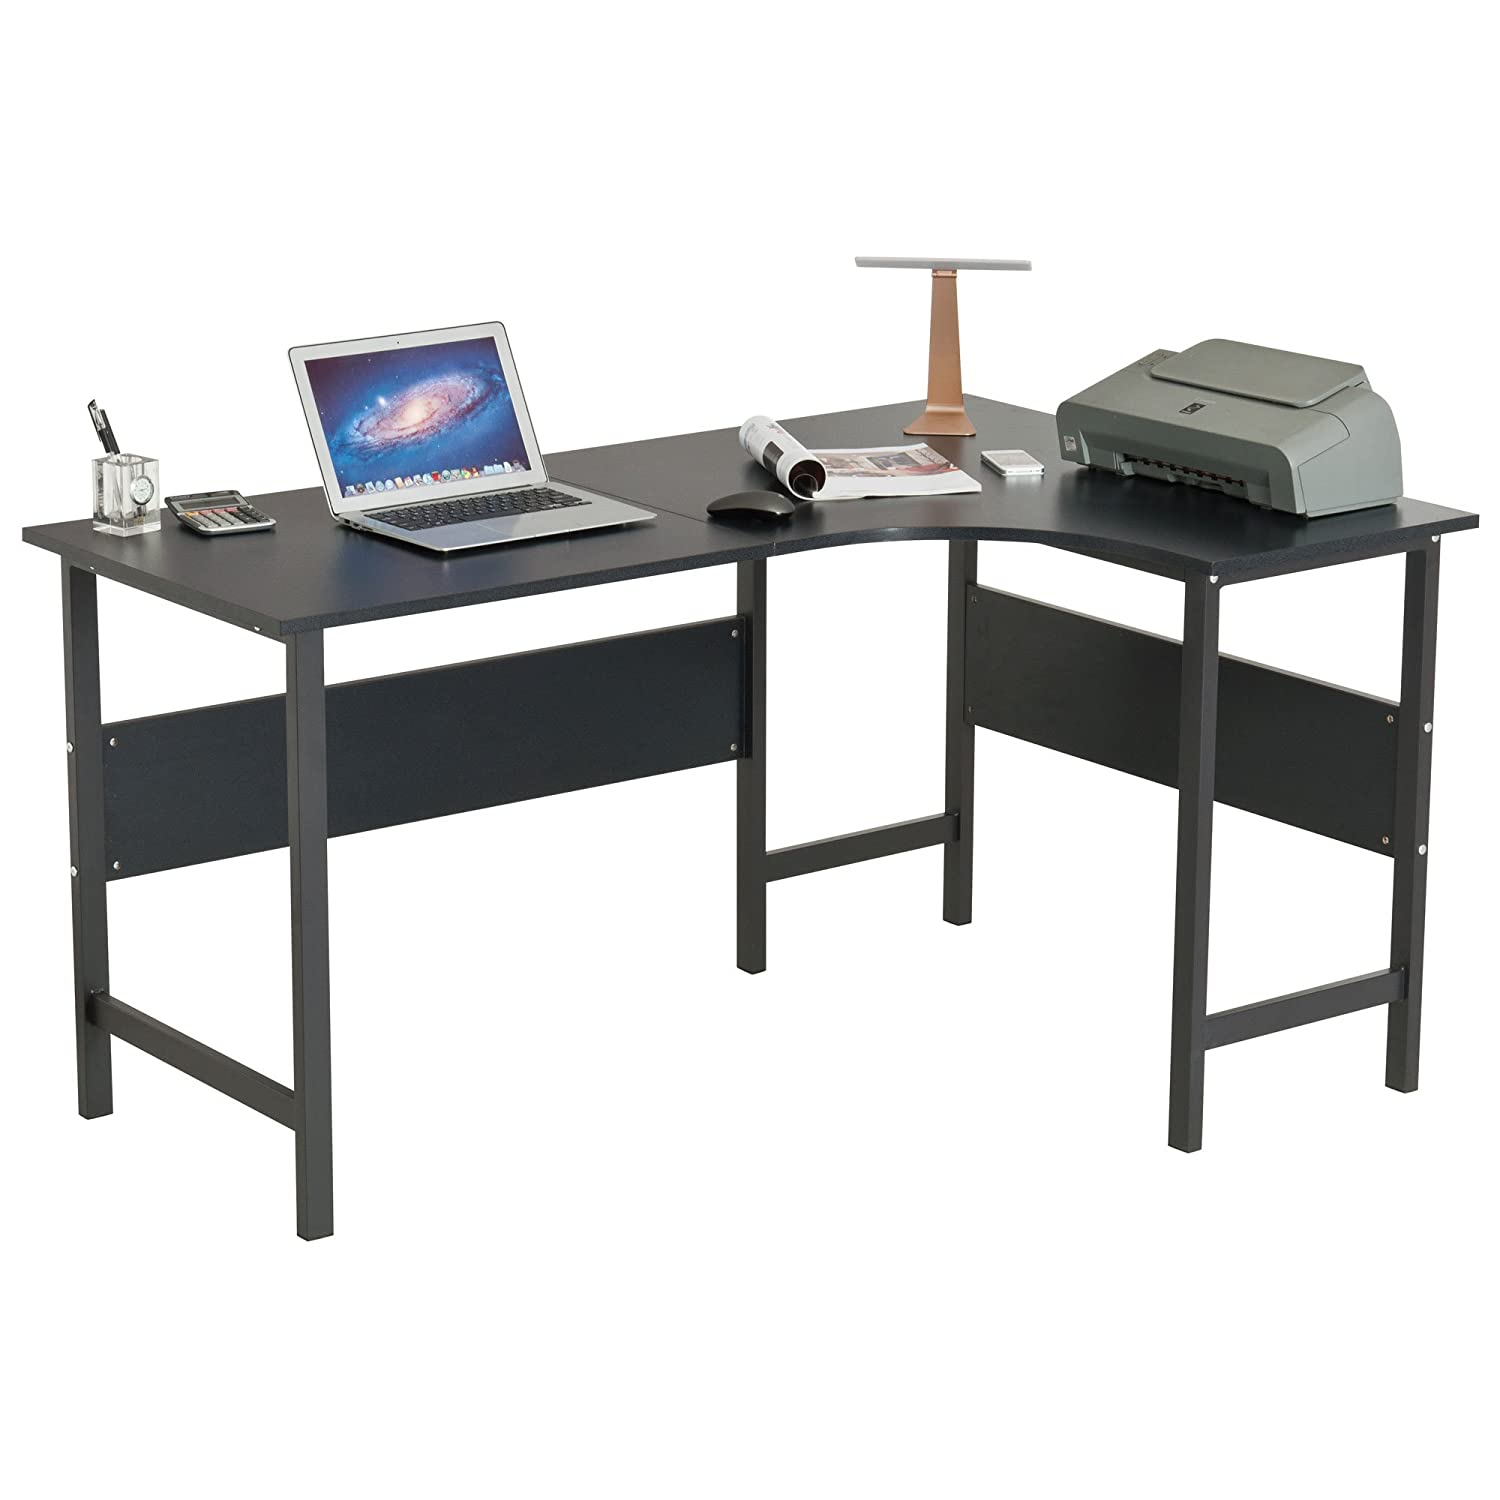 92 Piranha Office Furniture Uk Large Corner Computer And Gaming Desk Table With Keyboard